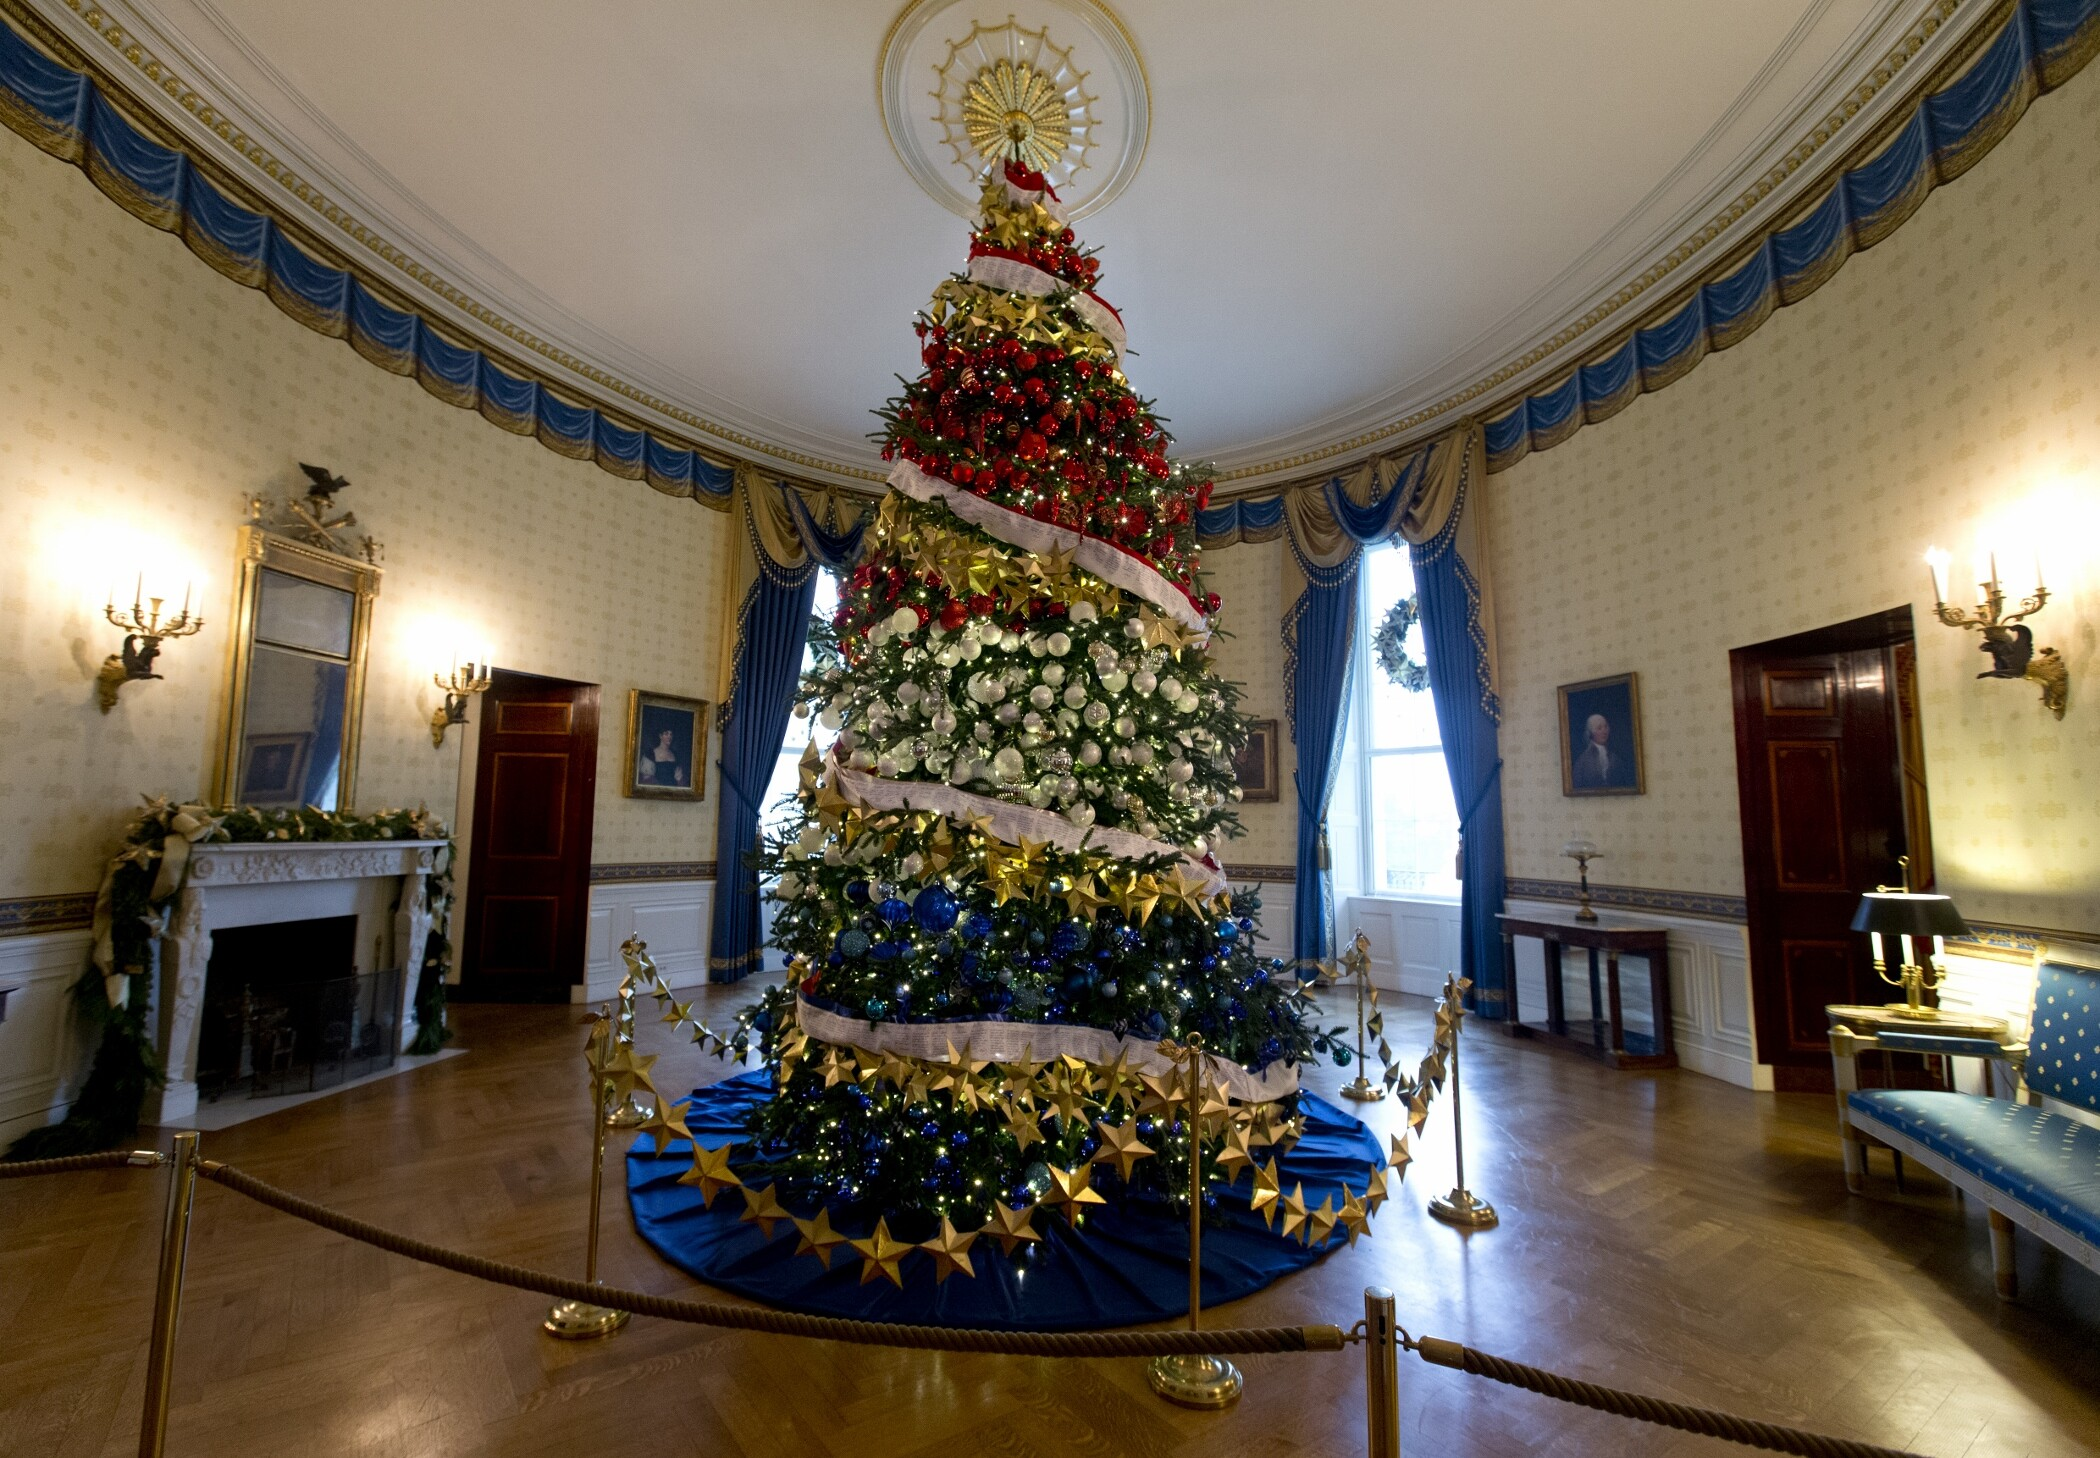 Melania Trump White House Christmas.Melania Trump To Accept White House Christmas Tree Next Week